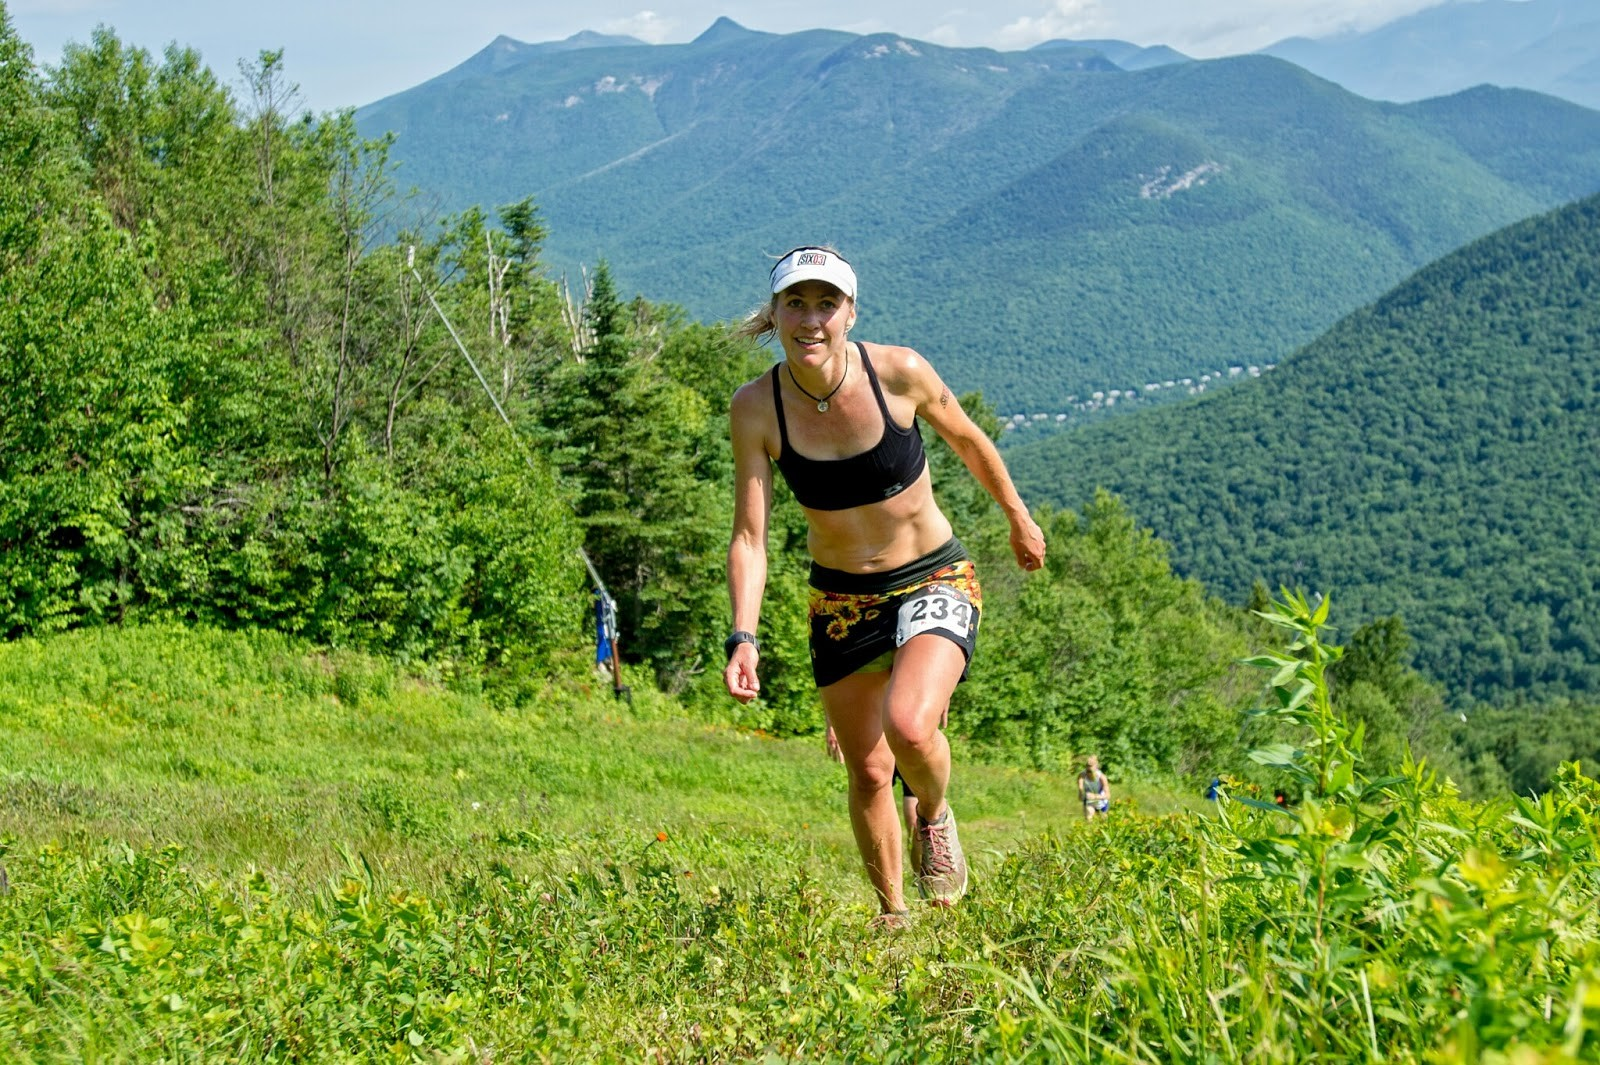 Loon Mountain Race wants to increase women's participation